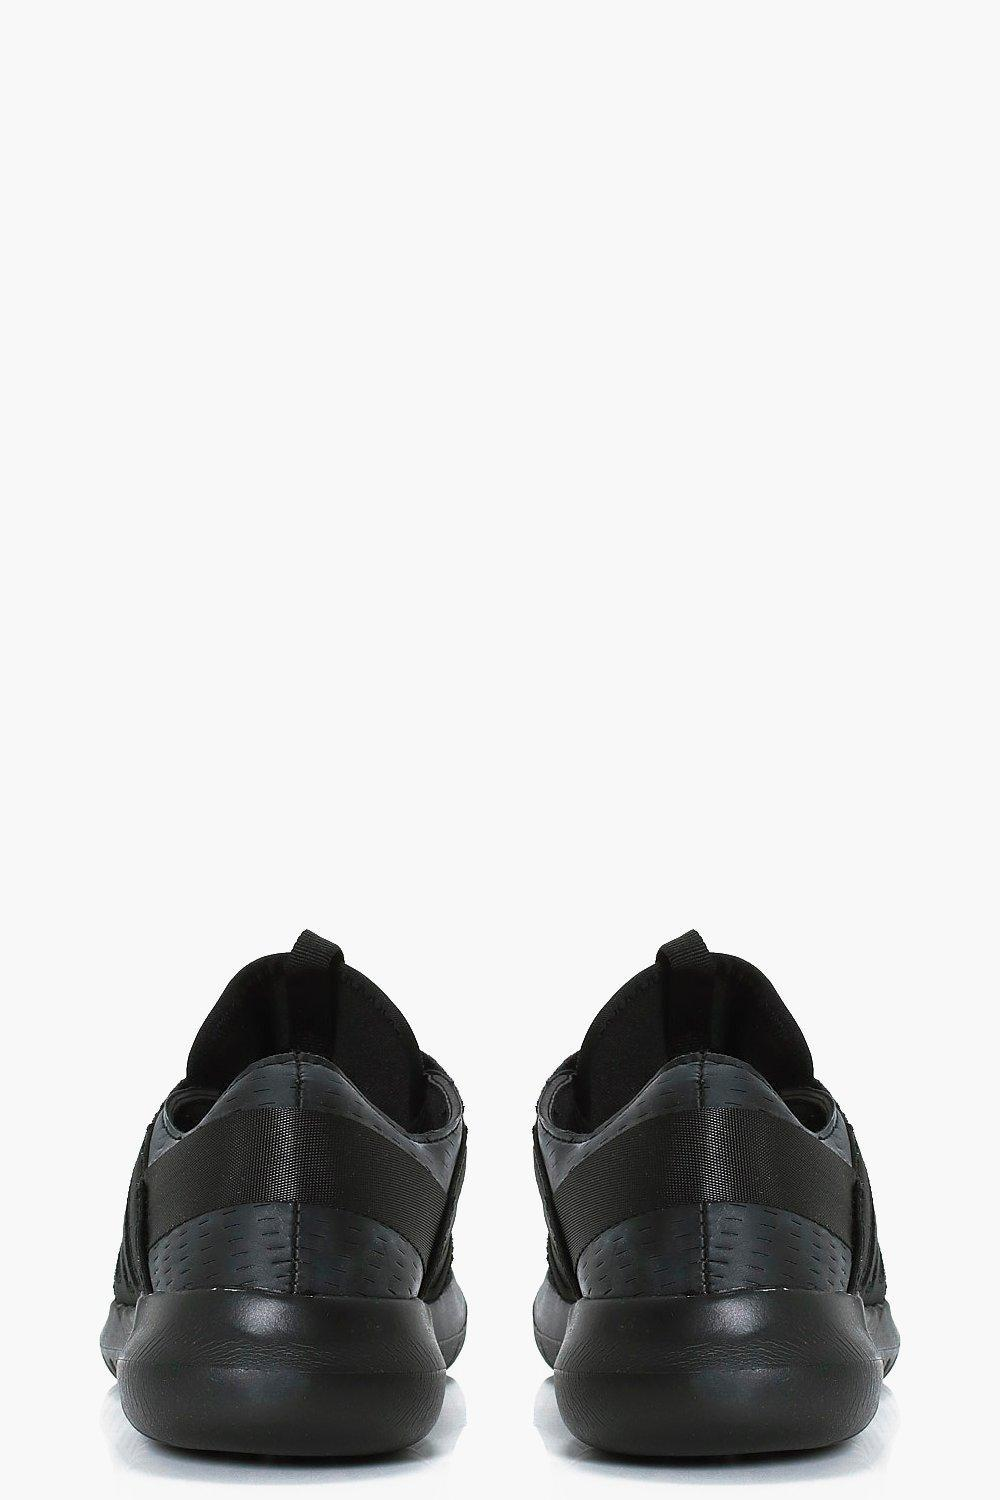 Boohoo Imogen Lace Up Sports Trainer in Black for Men